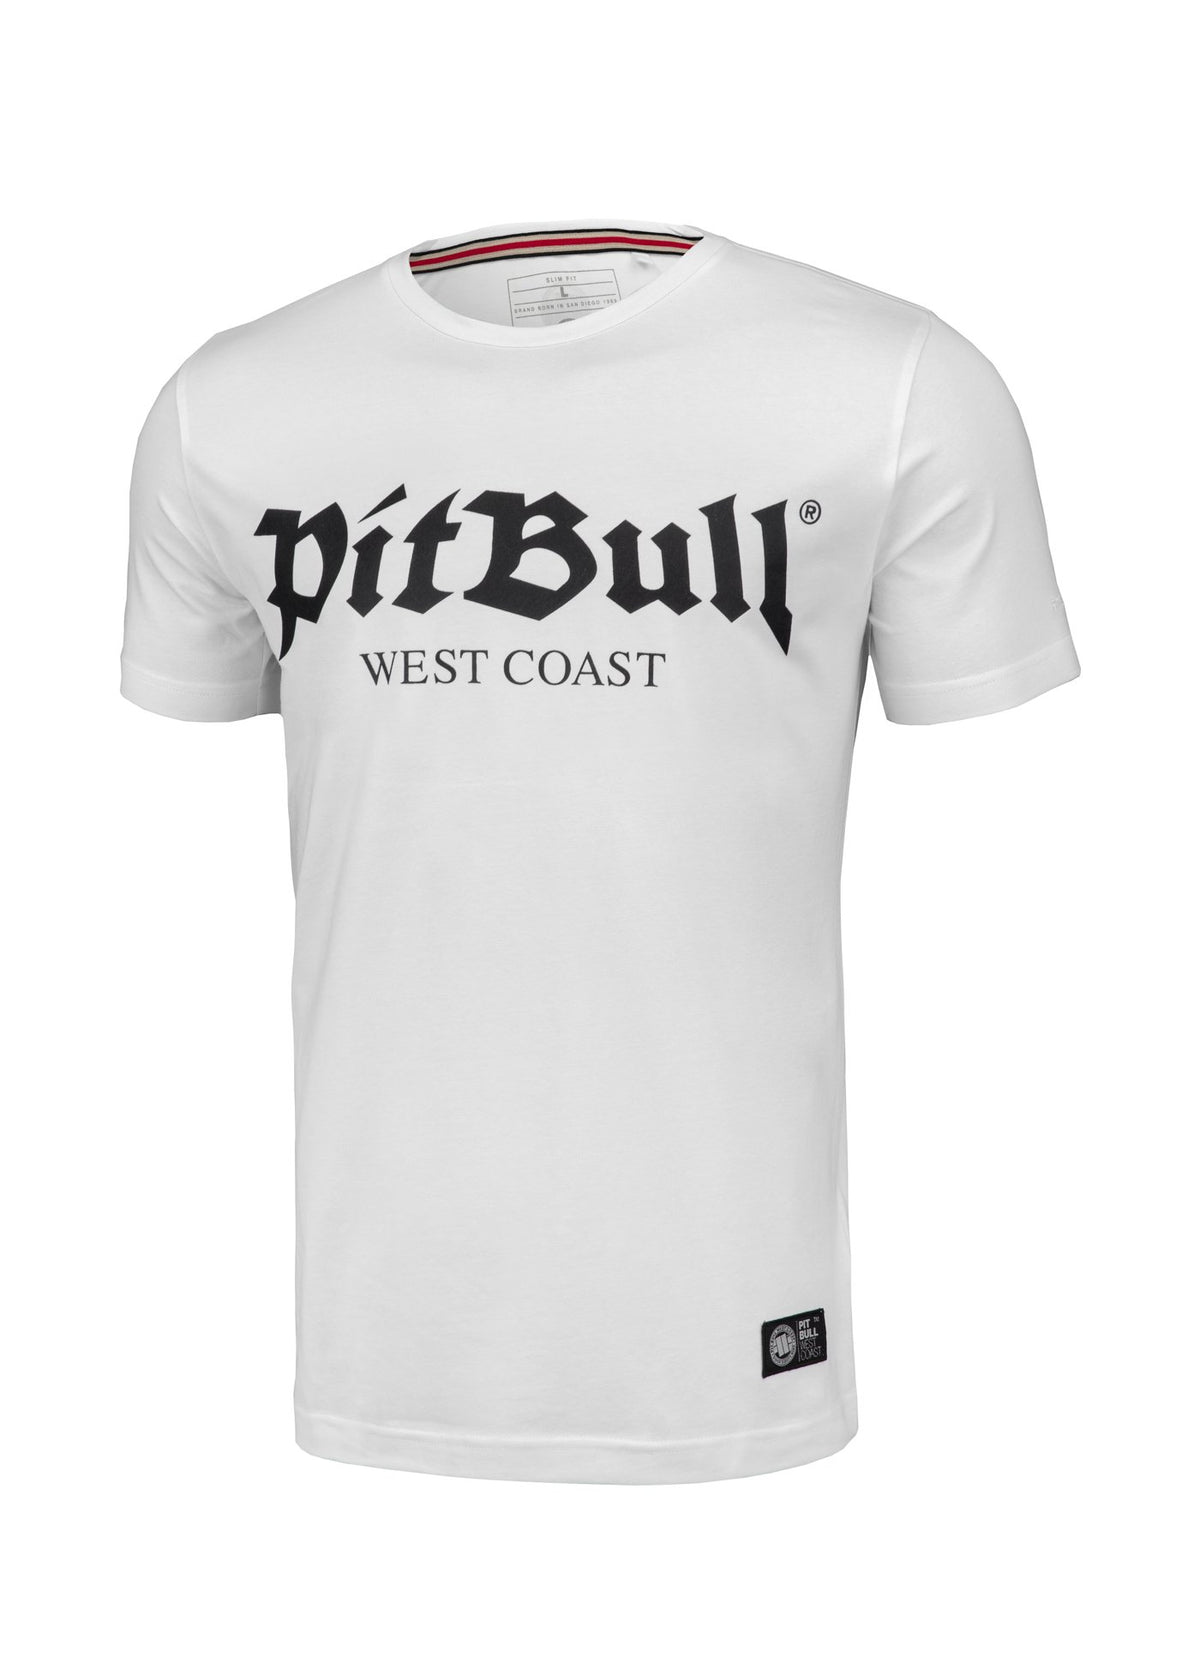 T-shirt Slim Fit Old Logo White - Pitbull West Coast U.S.A.